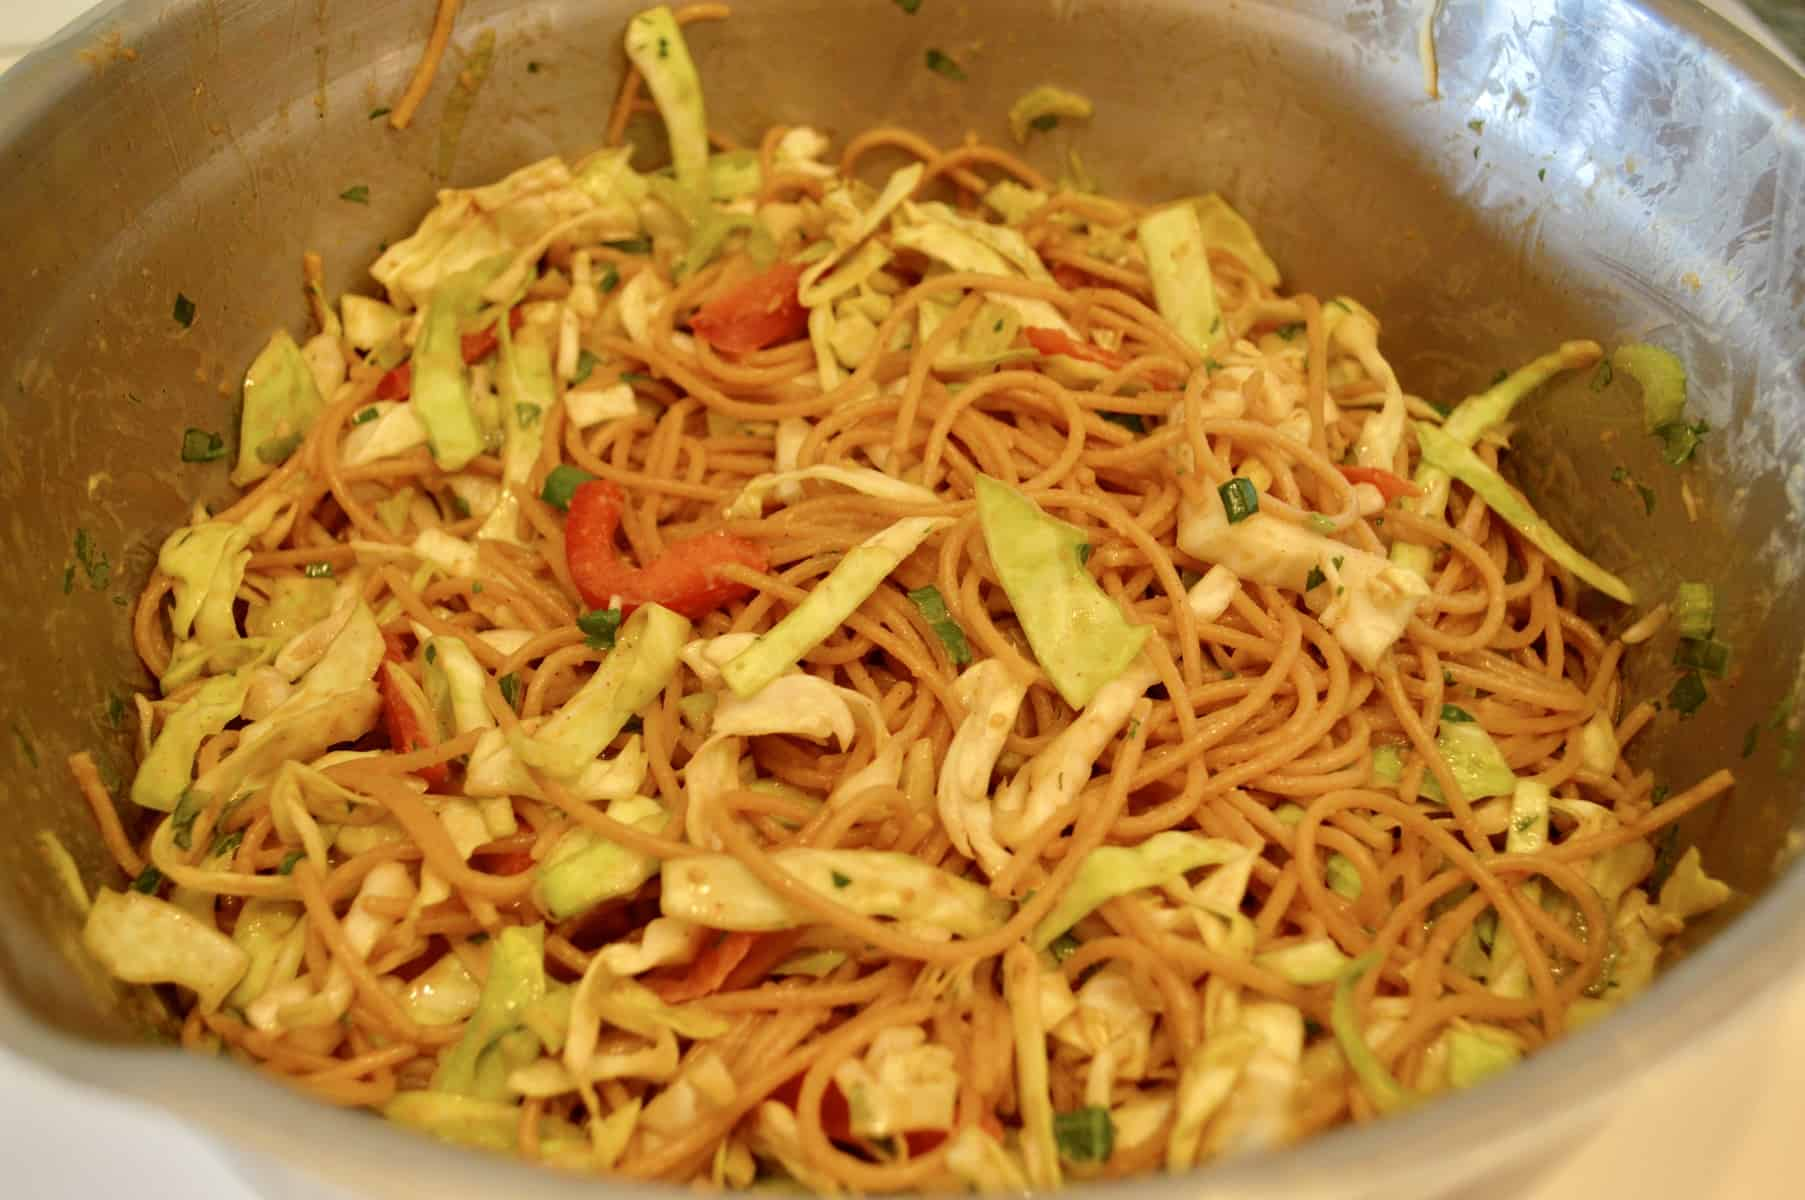 Asian Noodle Salad is an easy recipe using whole wheat spaghettini, cabbage, bell peppers, soy sauce, and peanut butter. Meal prep lunches and great side dish. #asian #noodle #salad #mealprep #healthy #sidedish #vegetarian #vegan #healthy #pastasalad